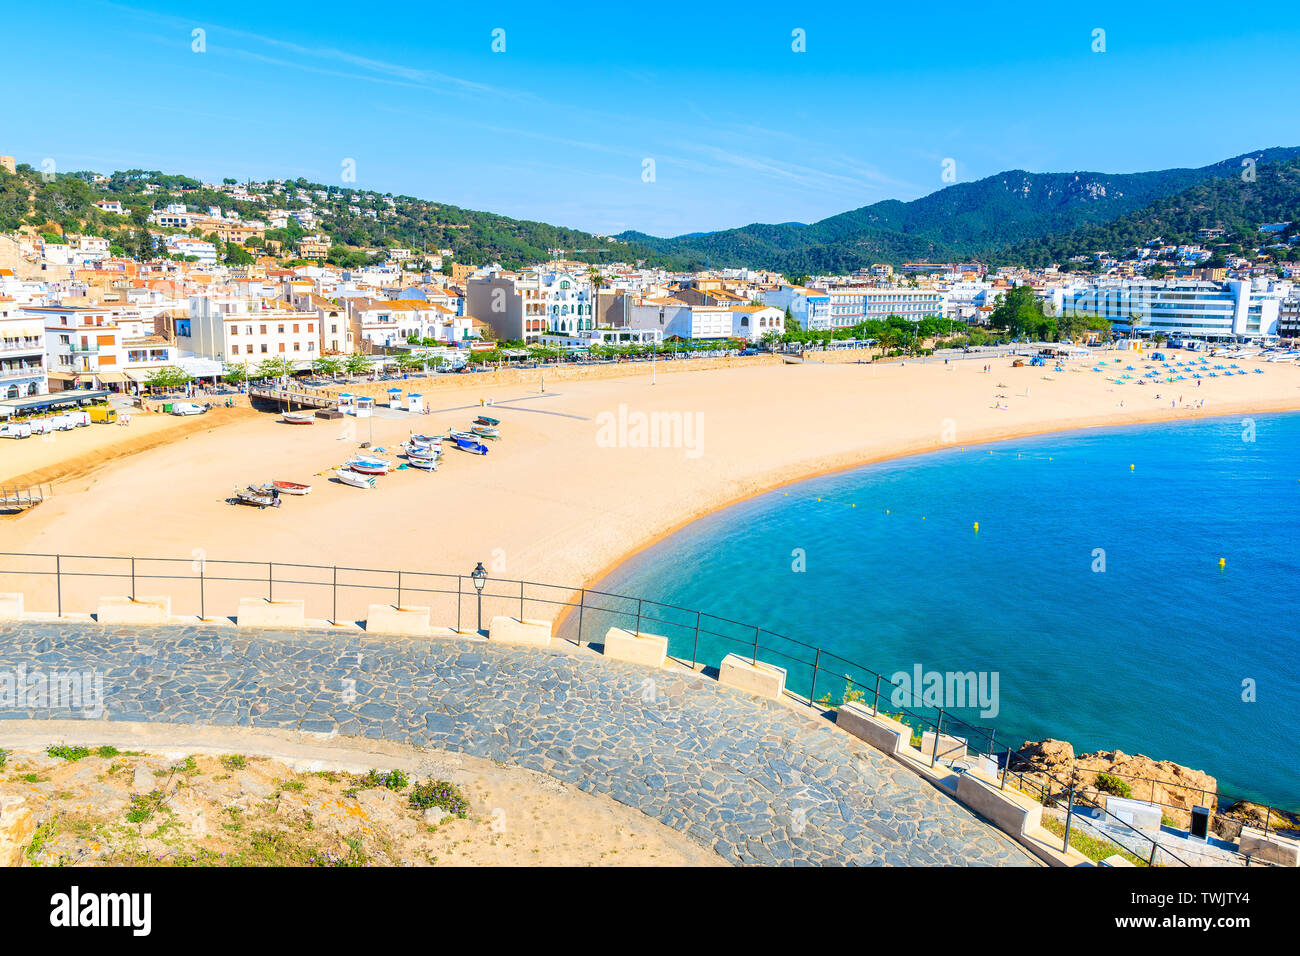 View of sandy beach and bay in Tossa de Mar town from castle, Costa Brava, Spain Stock Photo